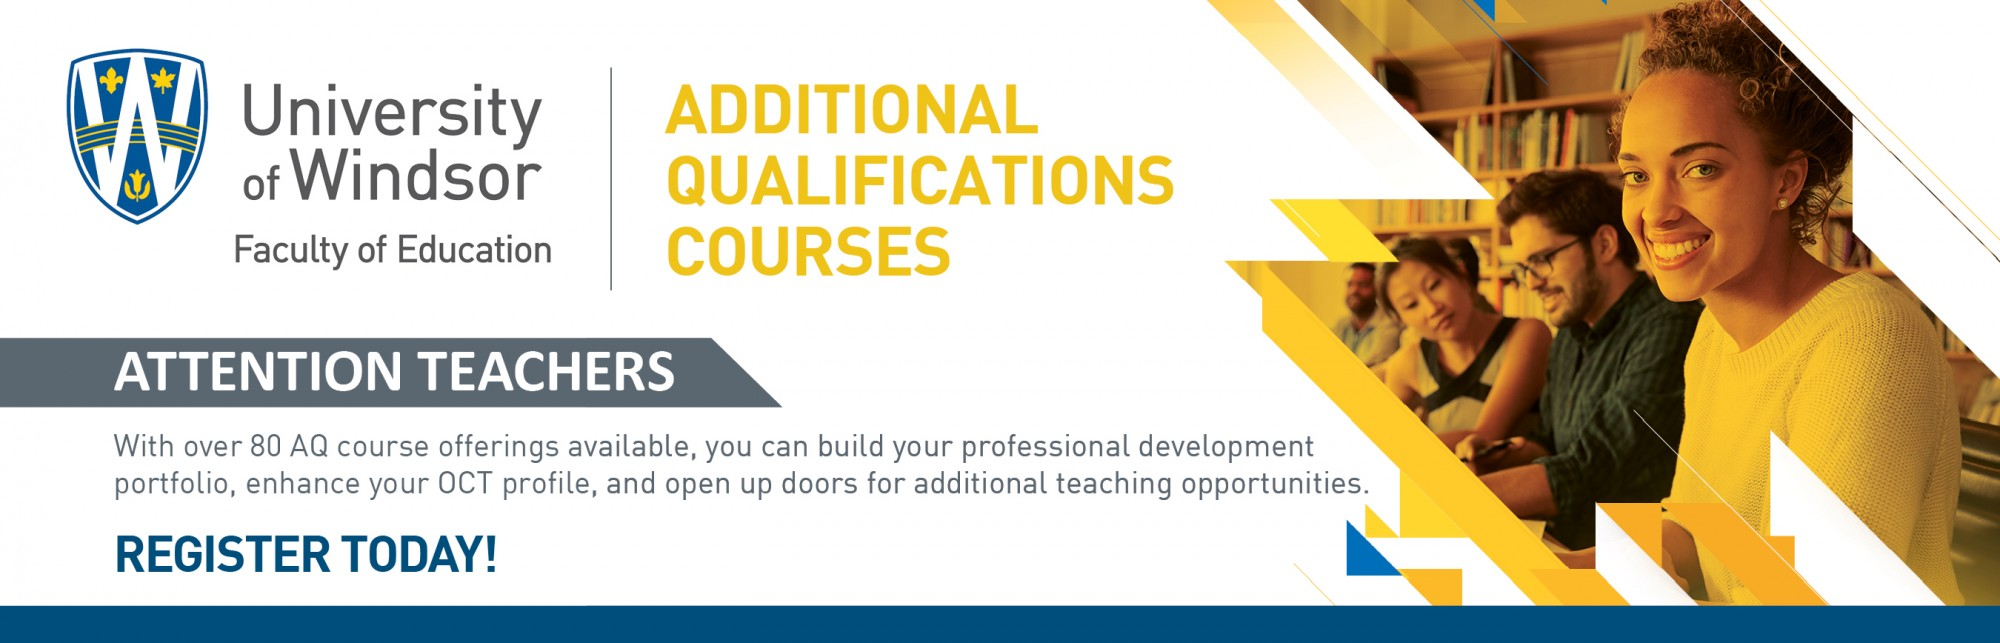 Additional Qualifications courses, banner ad describing over 80 available courses for professional development.